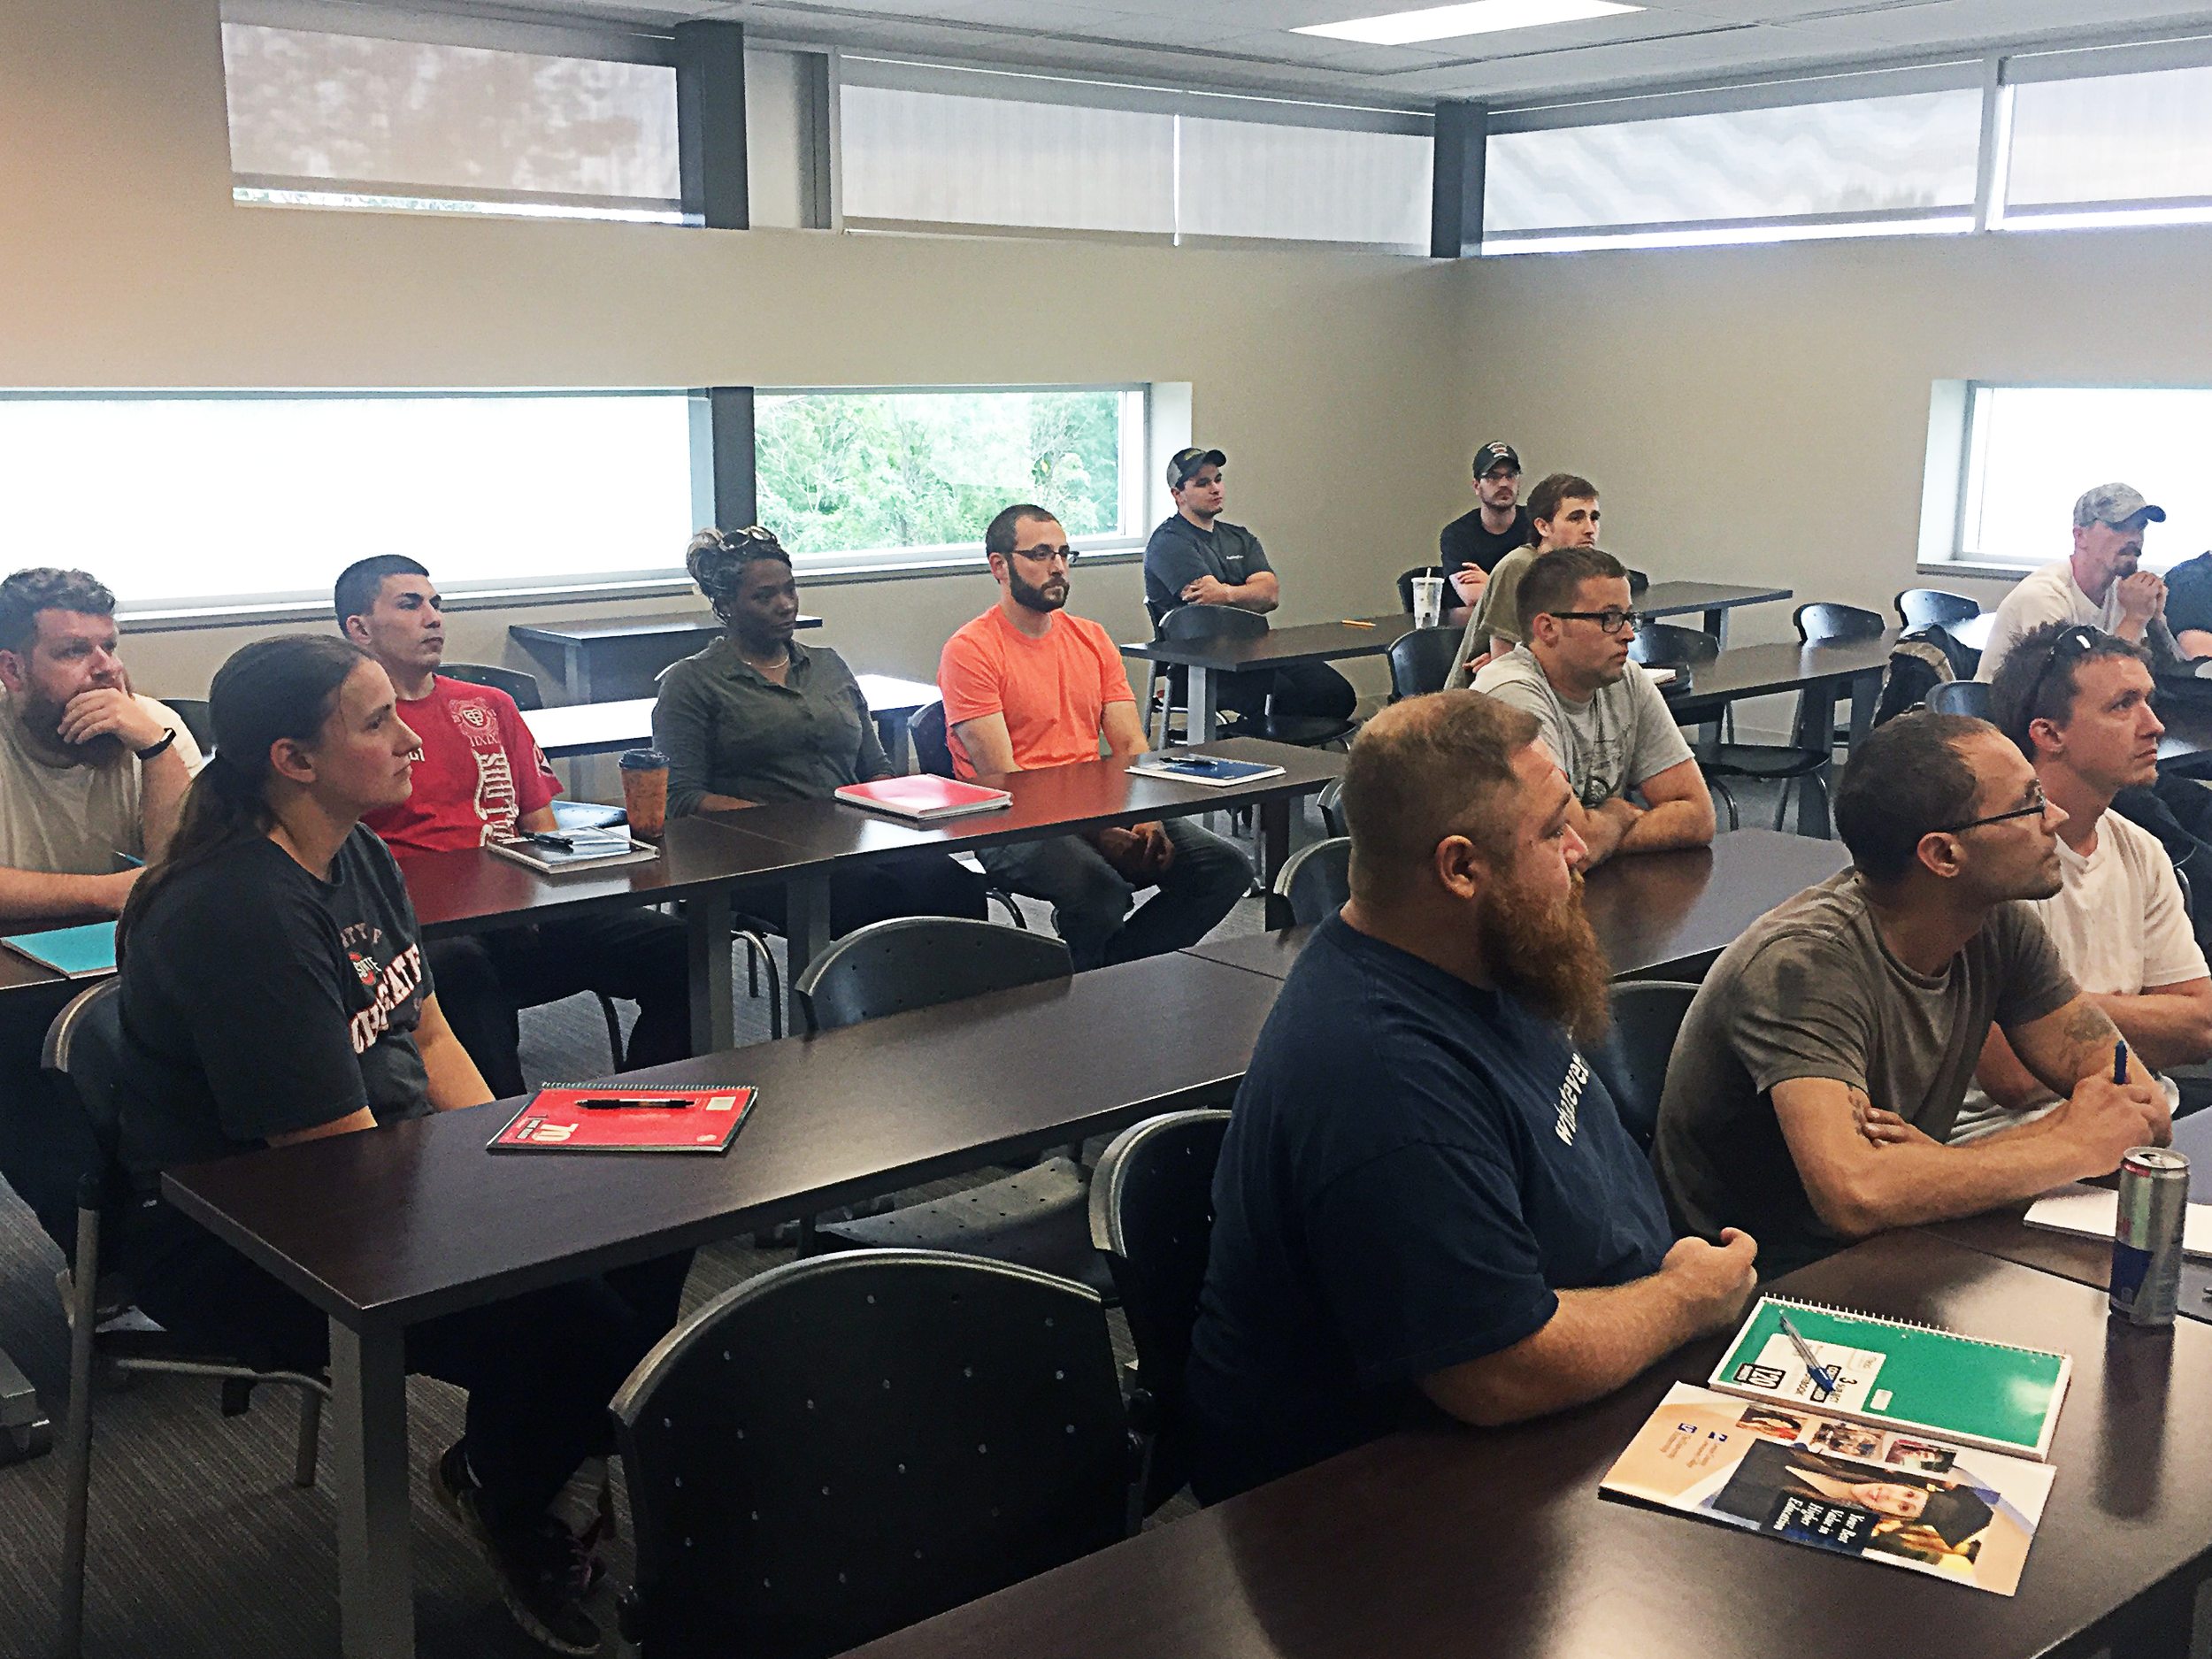 2017-08-29---Apprenticeship-Cohort-Day-1---Medina-County-Manufacturers-Partnership_retouch.png